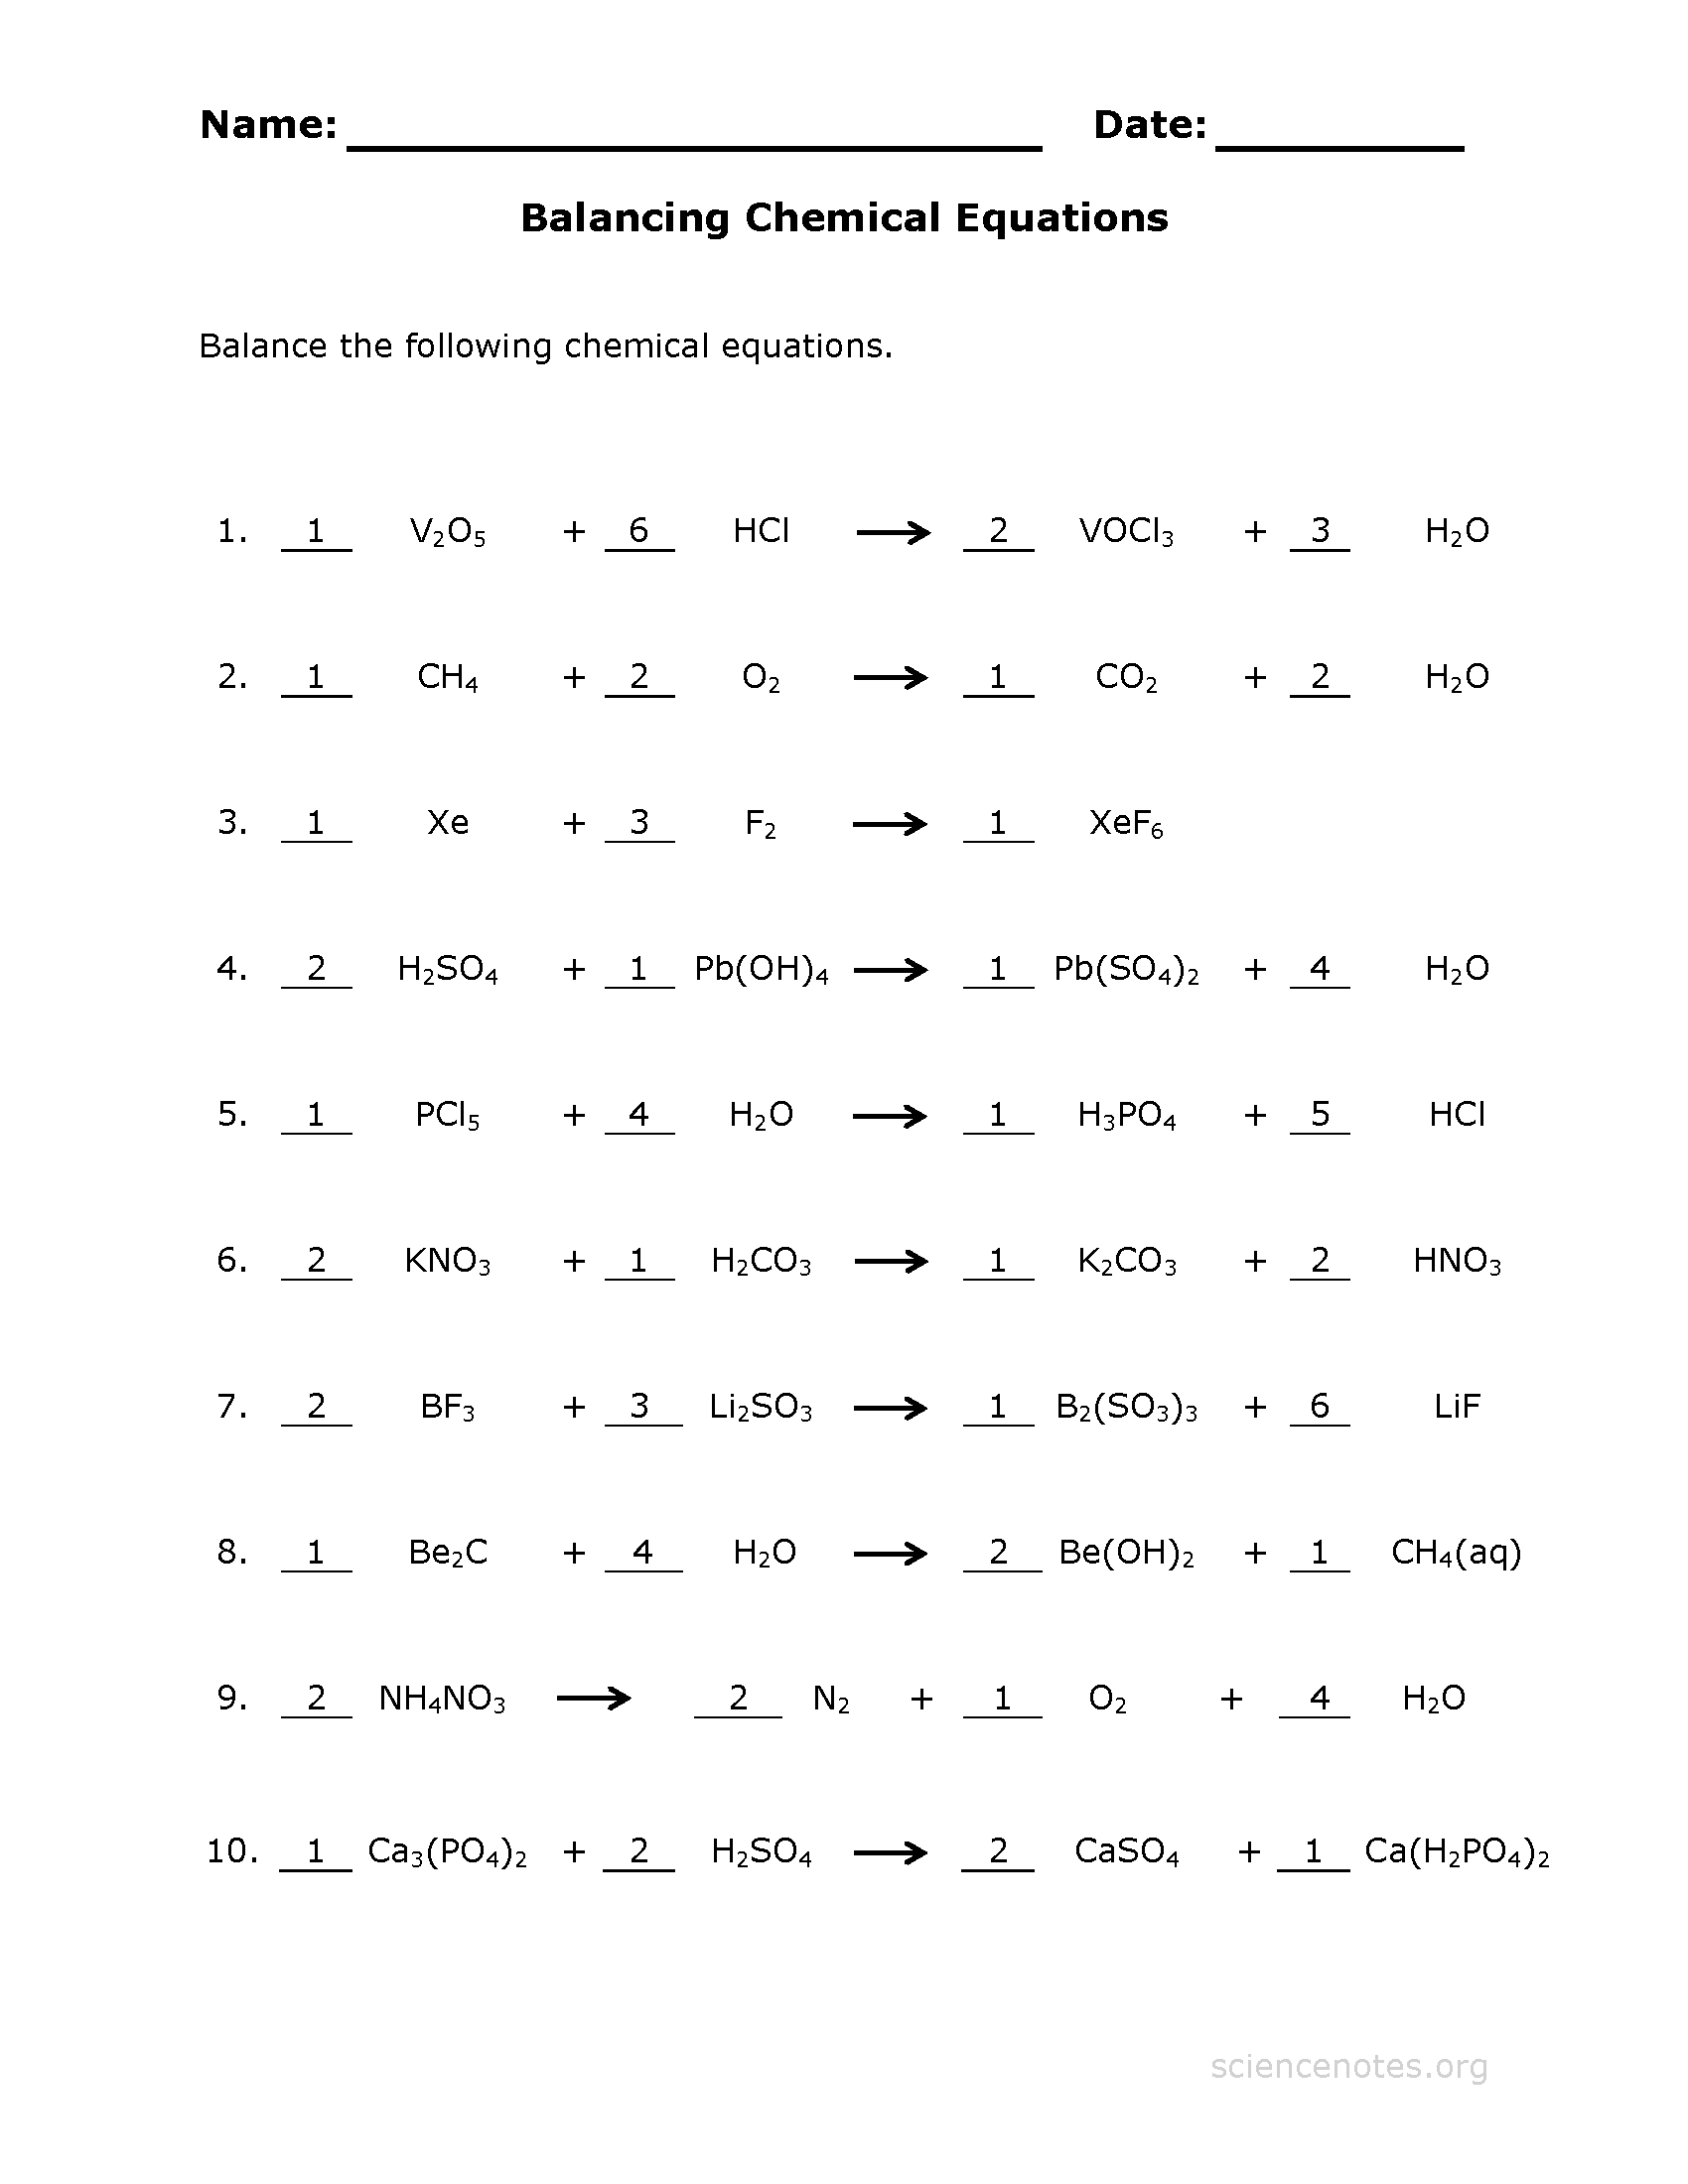 Another Balancing Equations These K Worksheet 3 Answer Key Chemical as well Word Equations Worksheet Chemistry Problems Writing Skeleton furthermore  moreover Chemistry Balancing Equations Worksheet Basic Addition Packet in addition 6 Balancing Chemical Word Equations Worksheet – dmodo co further Balancing Chemical Equations Worksheet Answers Problems And Chapter in addition Easy Steps To Balance Chemical Equations Oxygen And Hydrogen Atoms furthermore  likewise Chemistry Writing s Worksheet Answers   Briefencounters further  besides Writing Word Equations Chemistry Worksheet   Lobo Black furthermore word equation to chemical equation worksheet – jideo co besides Chemistry Stoichiometry Worksheet Answers Fresh Stoichiometry Word moreover How to Balance Equations   Printable Worksheets furthermore Word Equations Worksheet  munity College  pleting Chemical in addition word equations worksheet – stnicholaseriecounty. on word equations worksheet chemistry answers